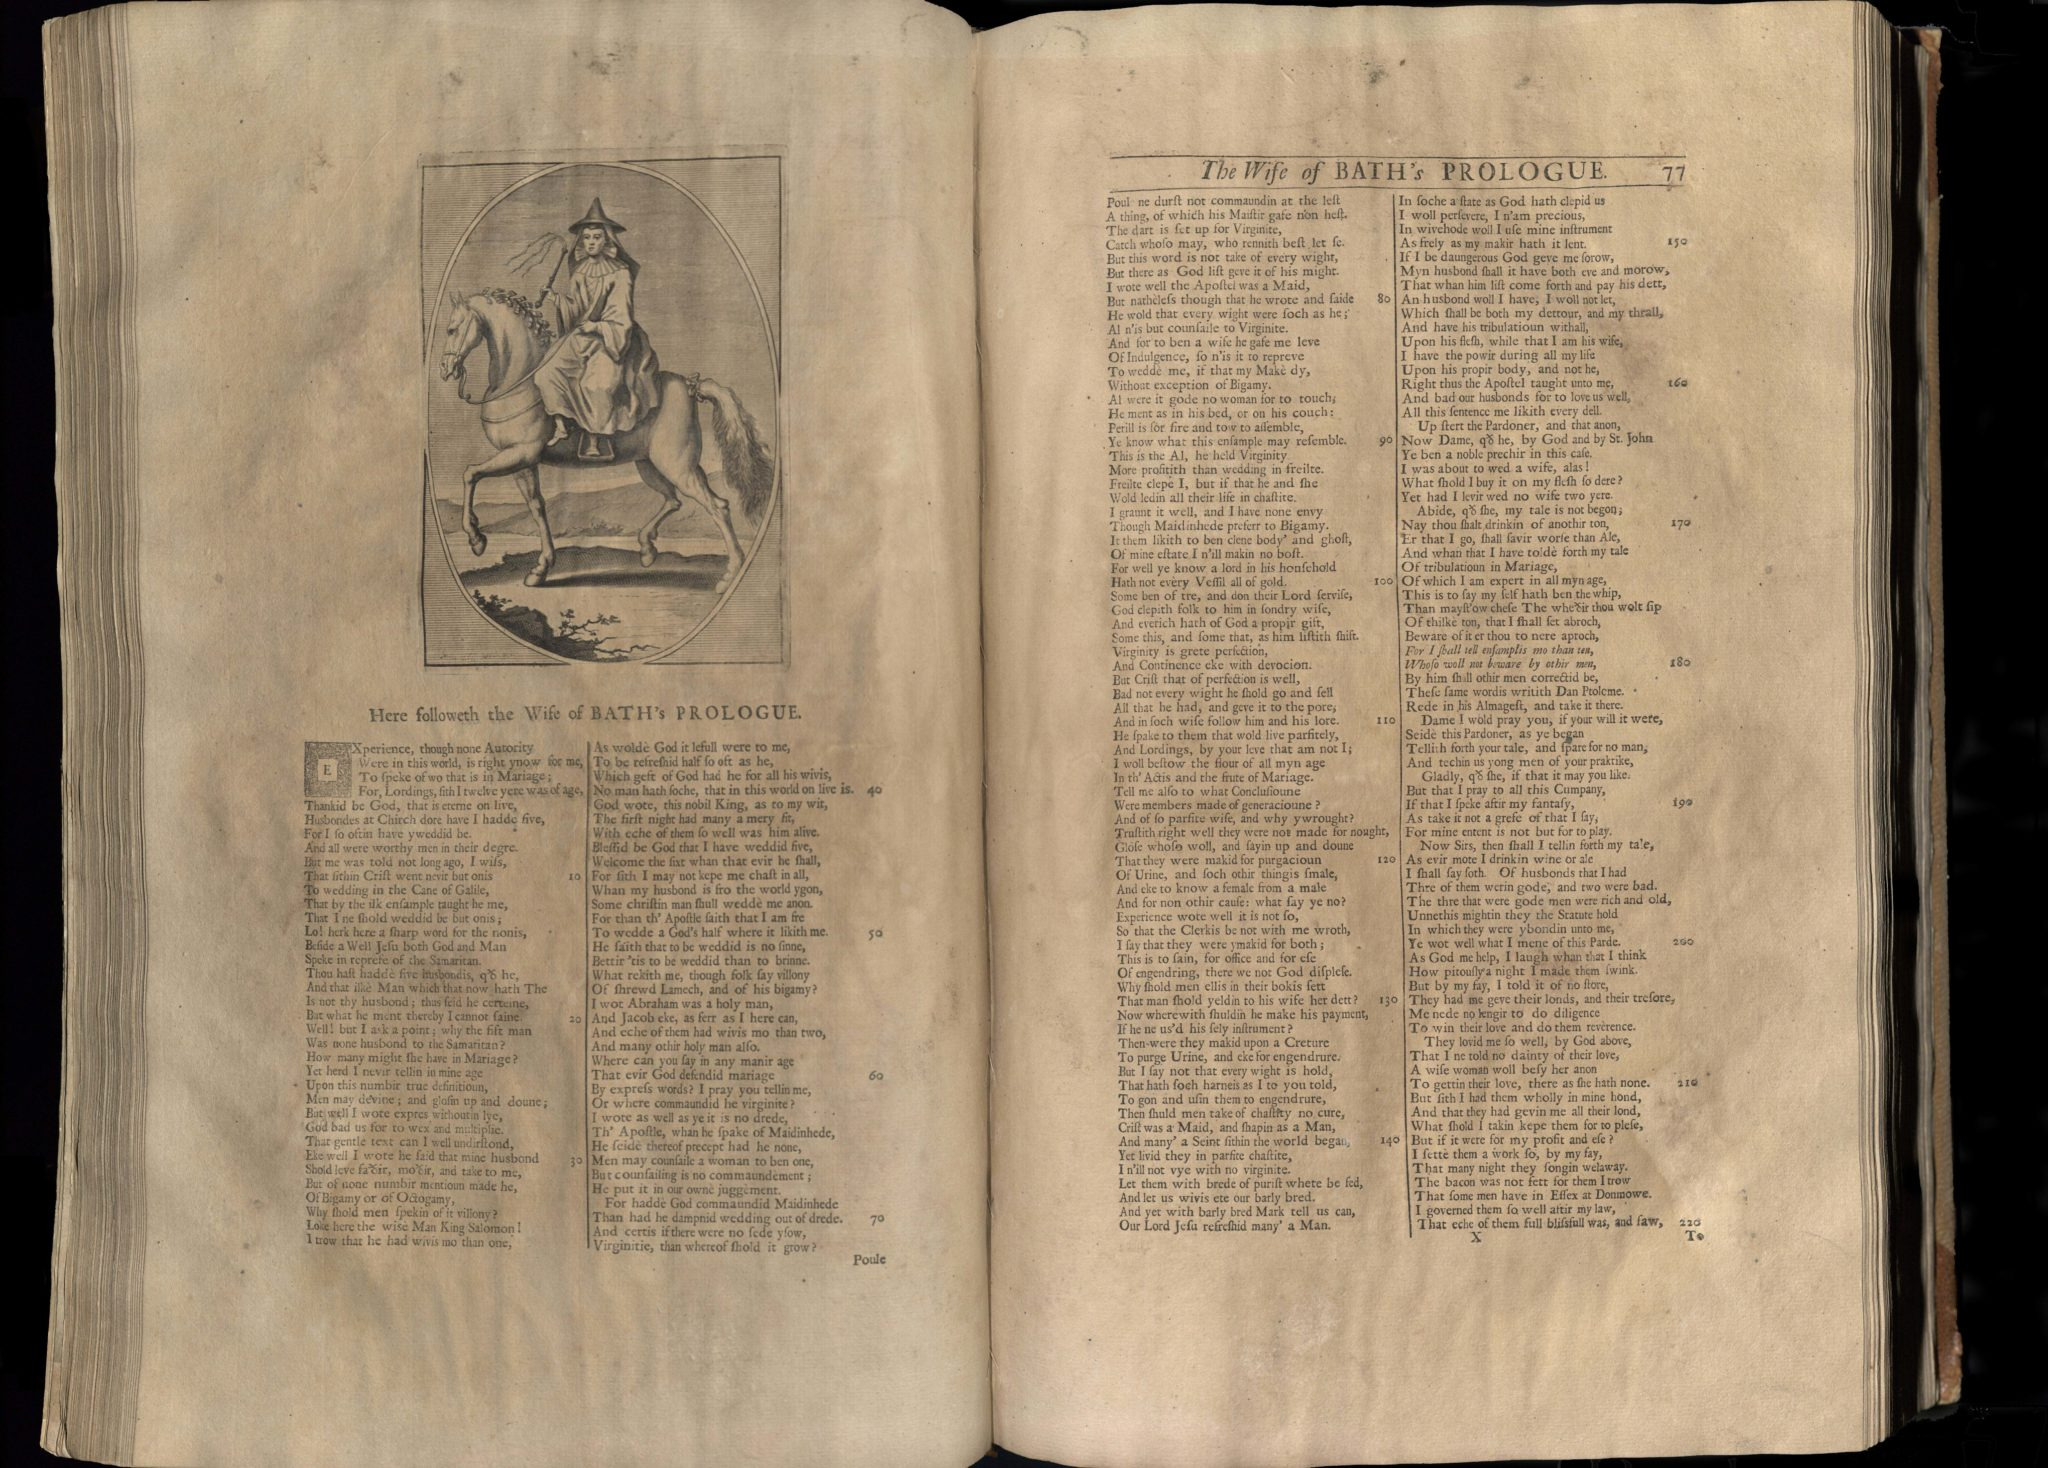 Chaucer, The Works of Geoffrey Chaucer, 1721, The Nun's Tale